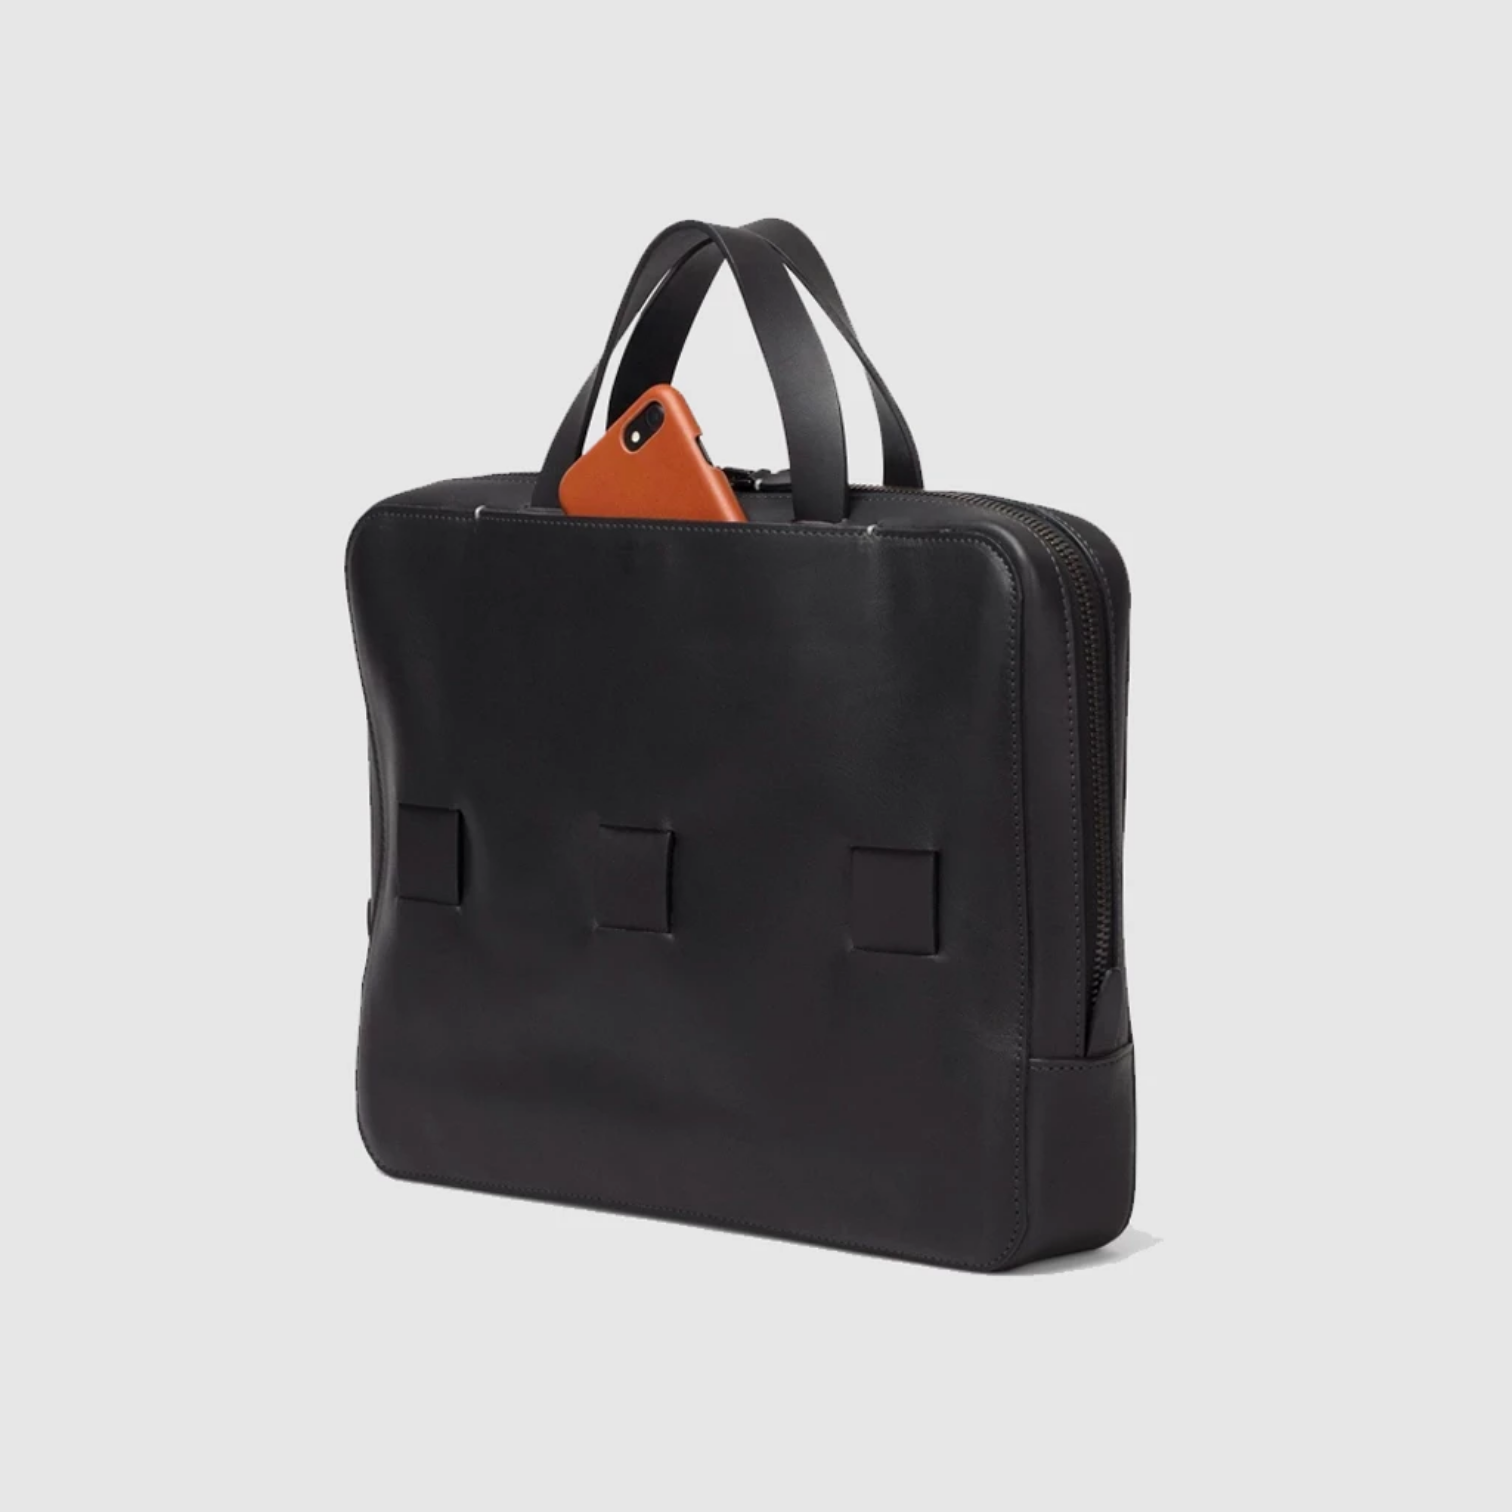 anson calder slim brief black french calfskin _black